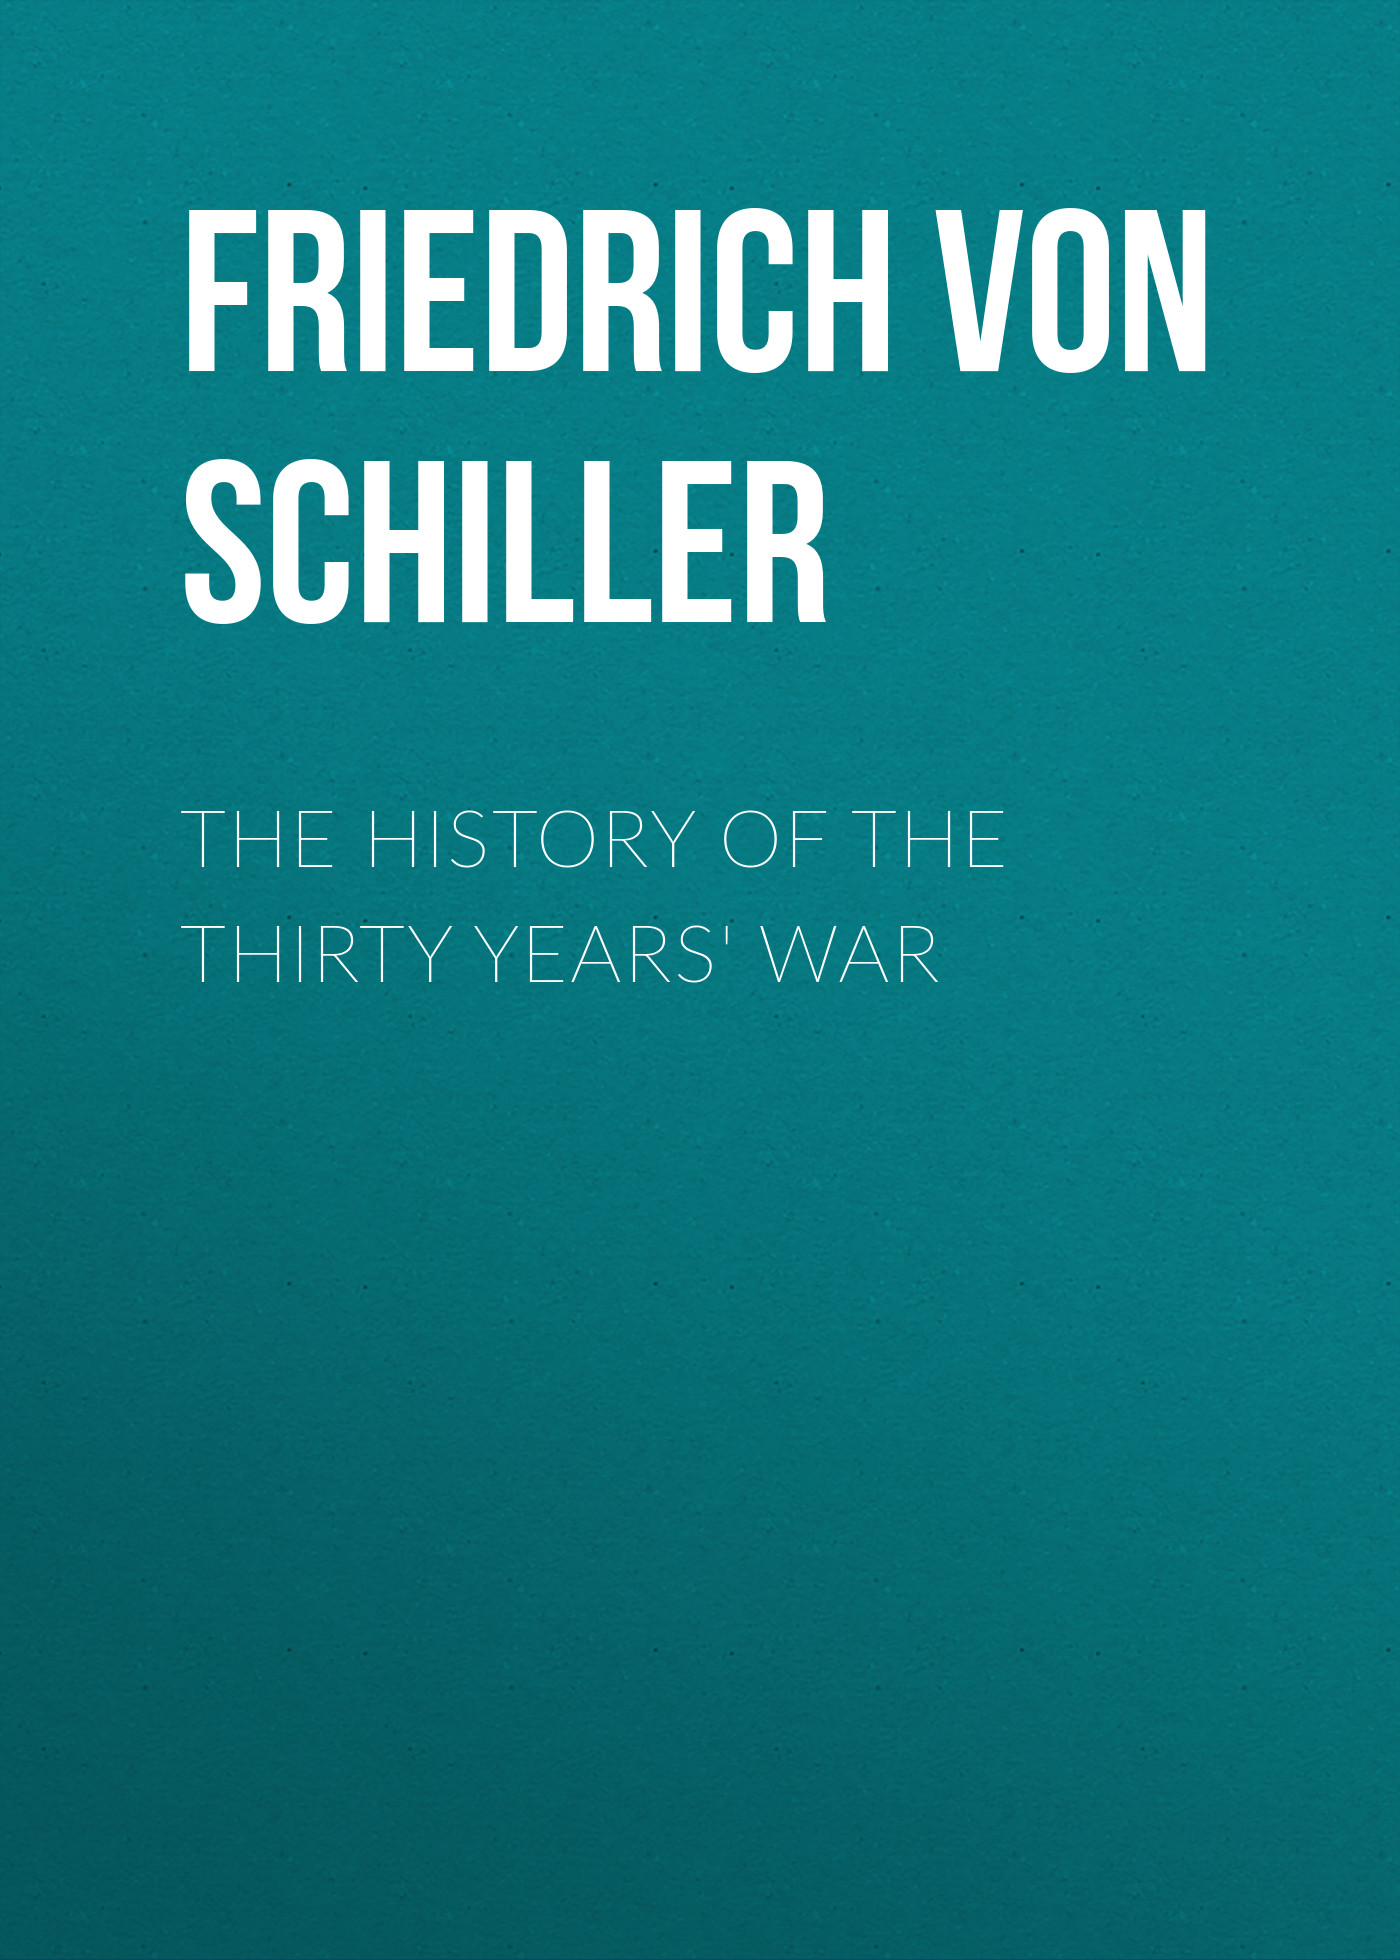 лучшая цена Friedrich von Schiller The History of the Thirty Years' War